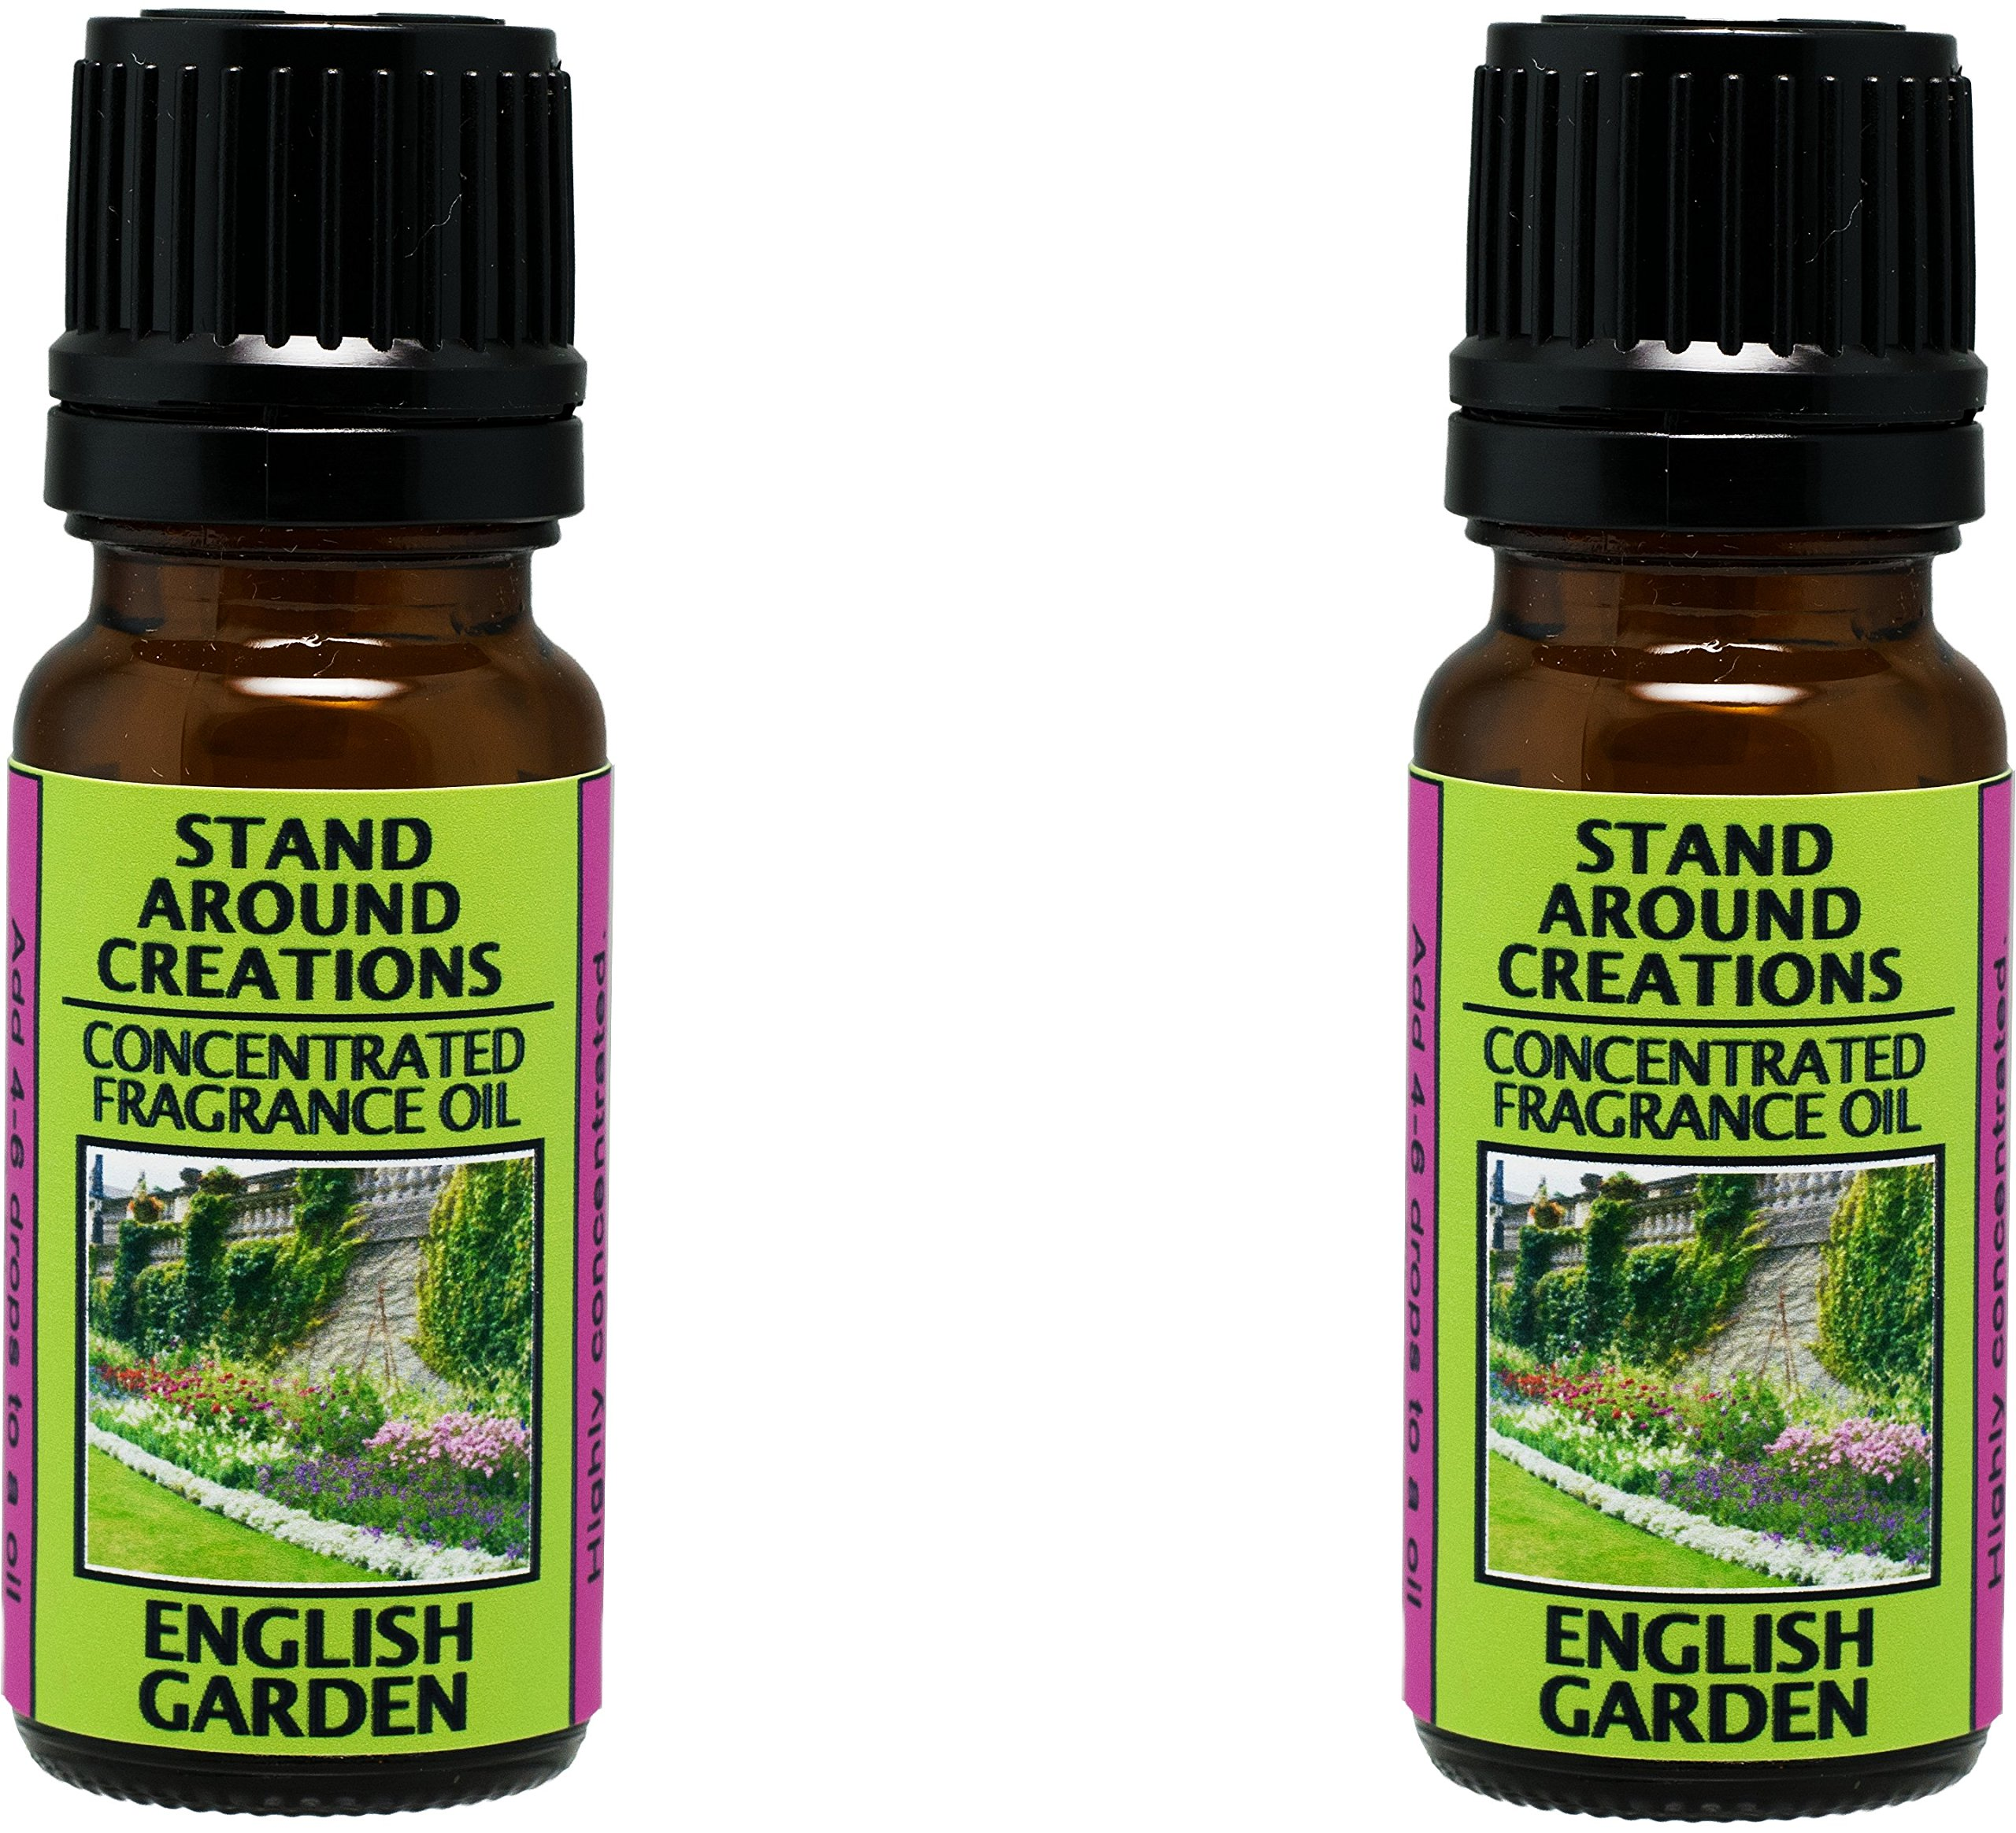 Set of 2 - Concentrated Fragrance Oil - English Garden - Notes of lily, lilac, rose & hyacinth. Made w/natural essential oils. (.33 fl.oz.)